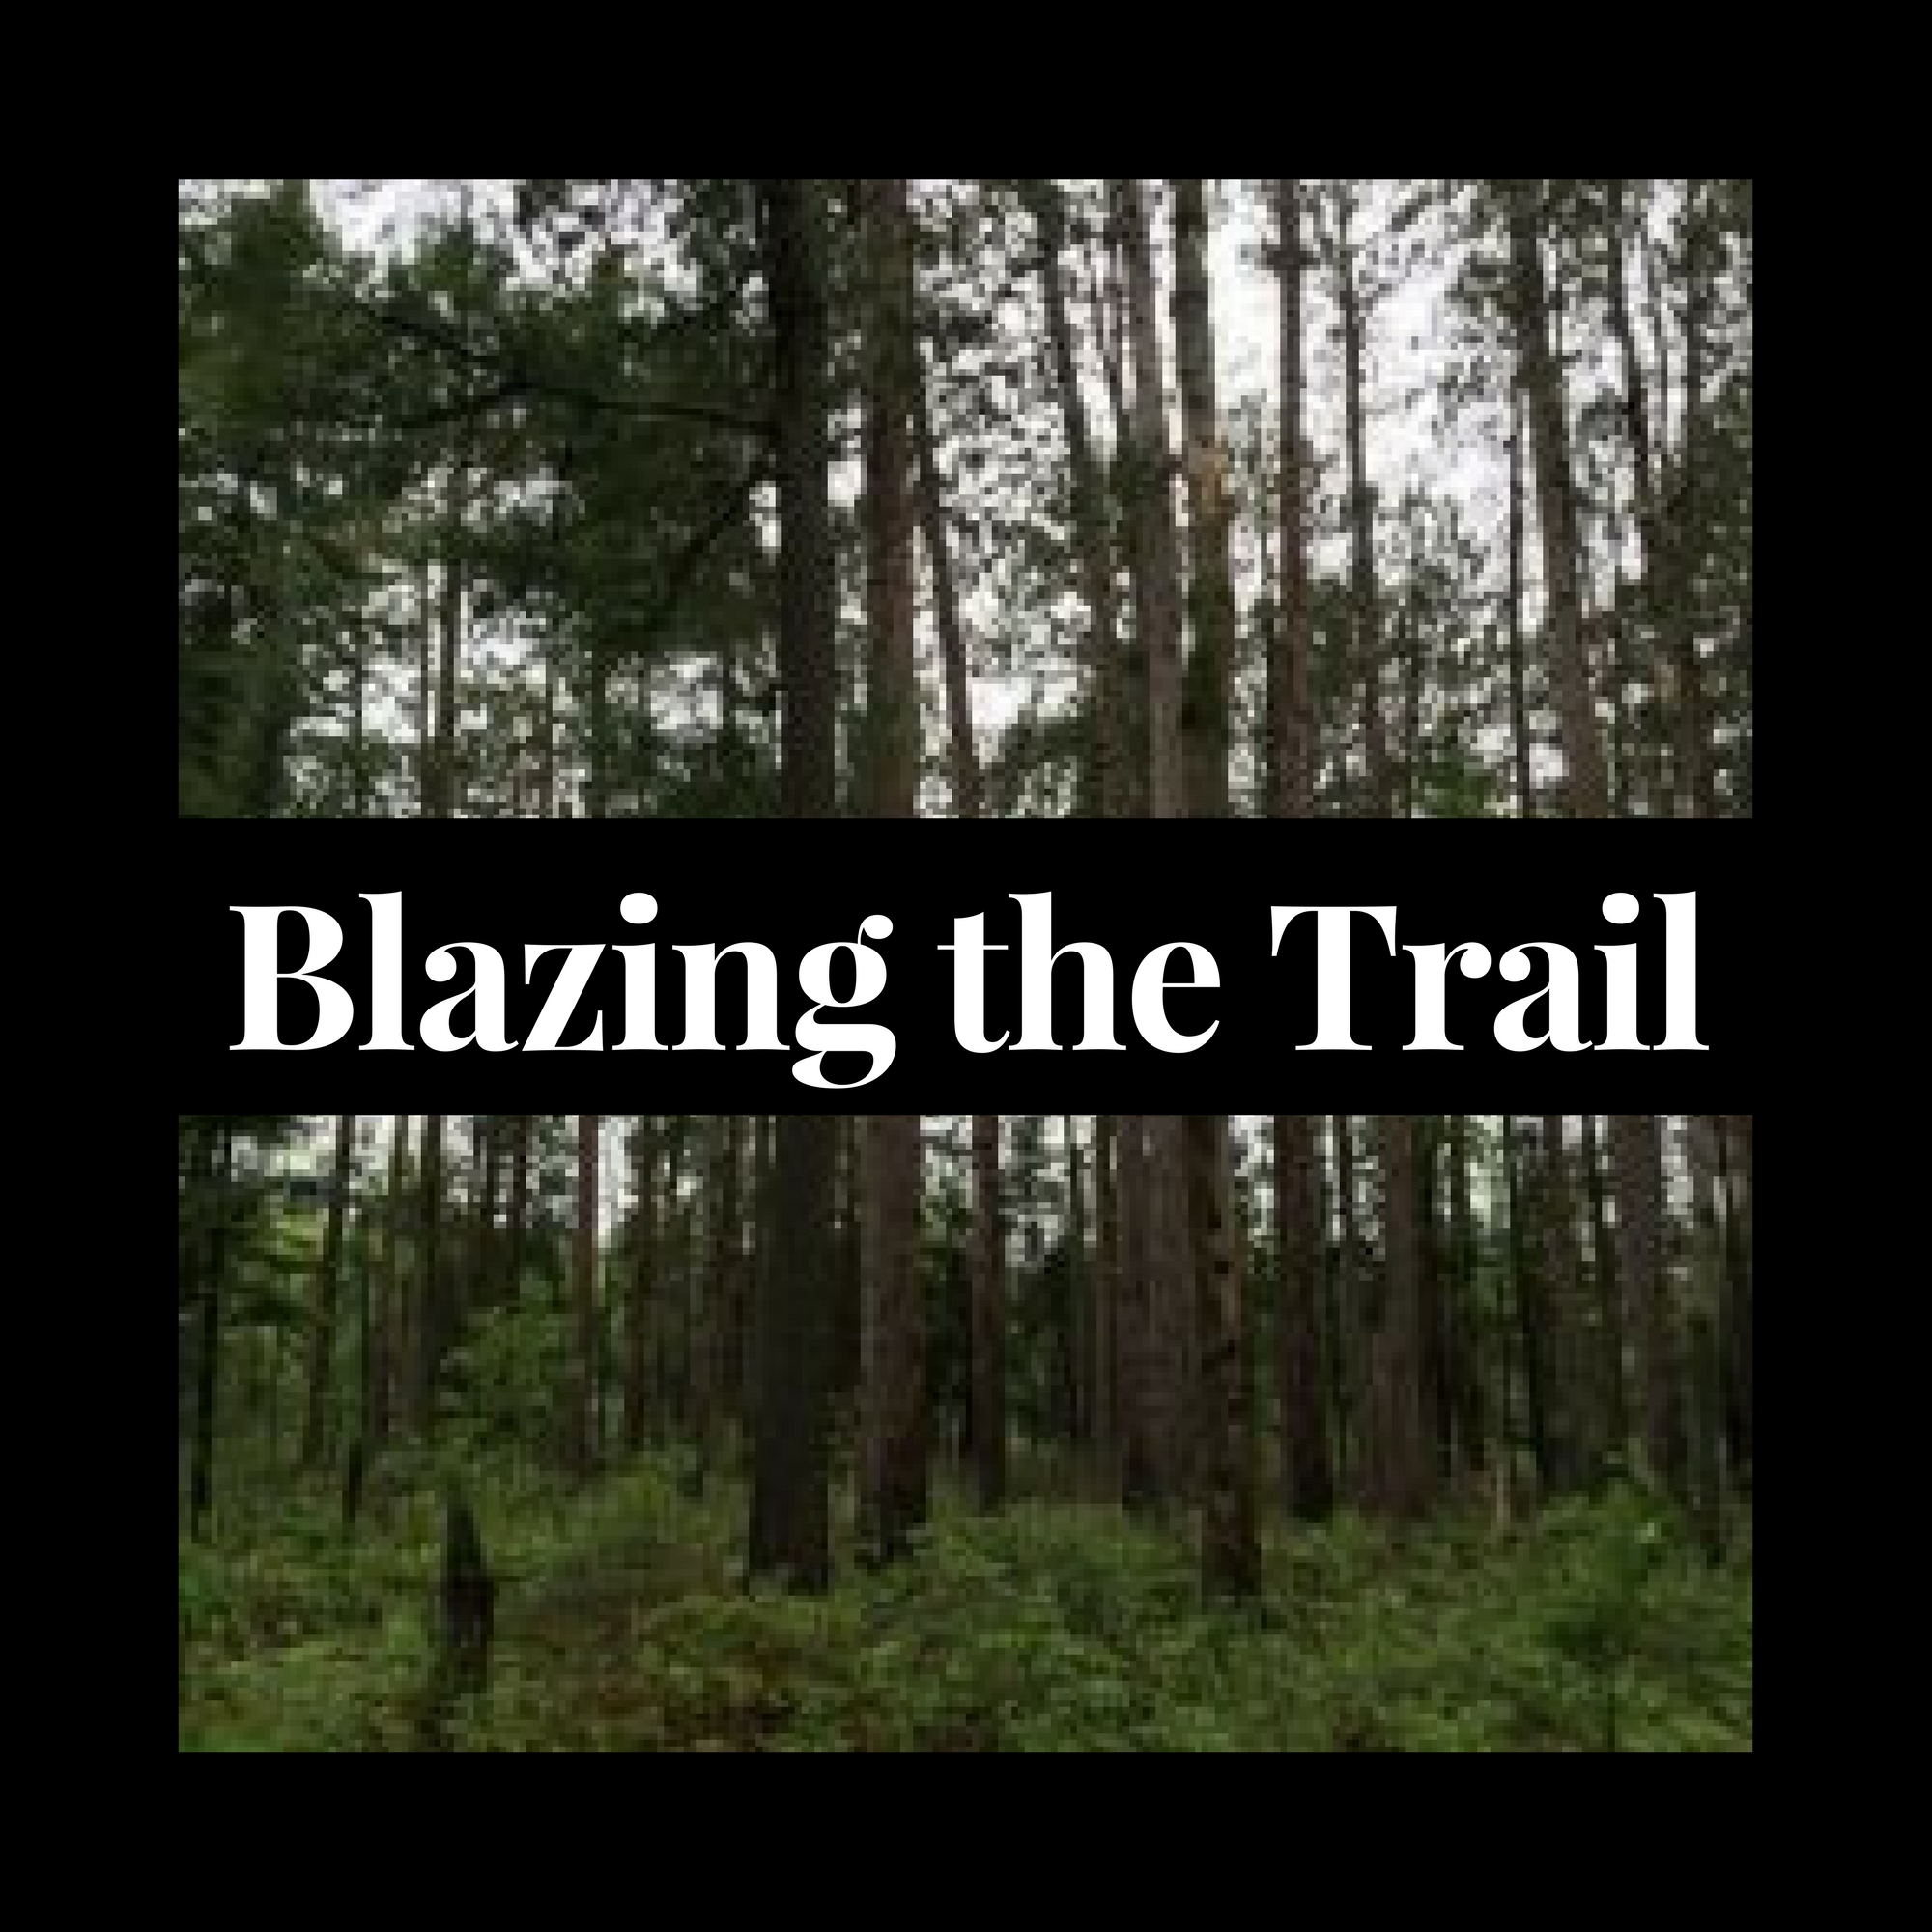 Blazing the Trail